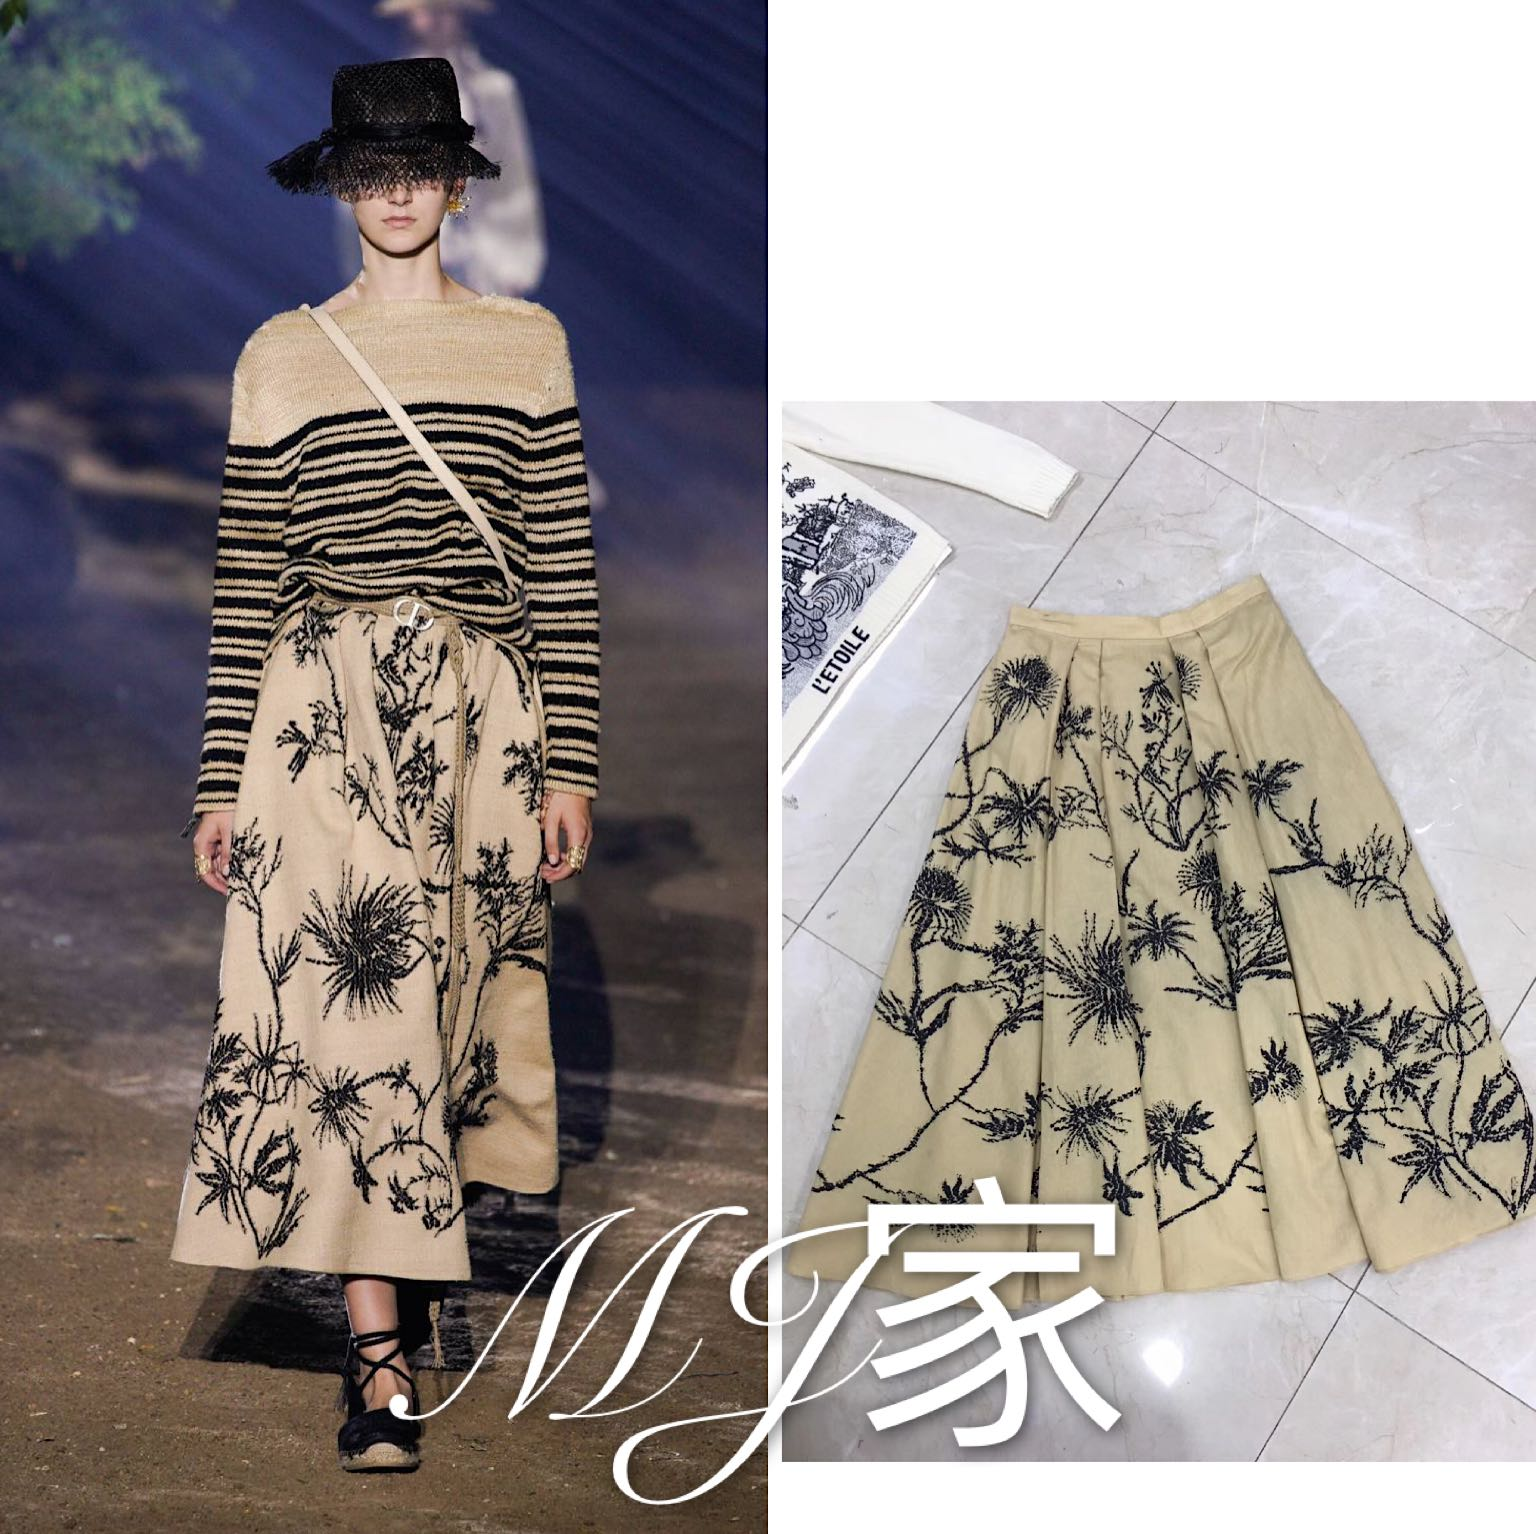 New  waist African dream temperament umbrella skirt printing drills very big fine cotton and linen woven skirts long skirt